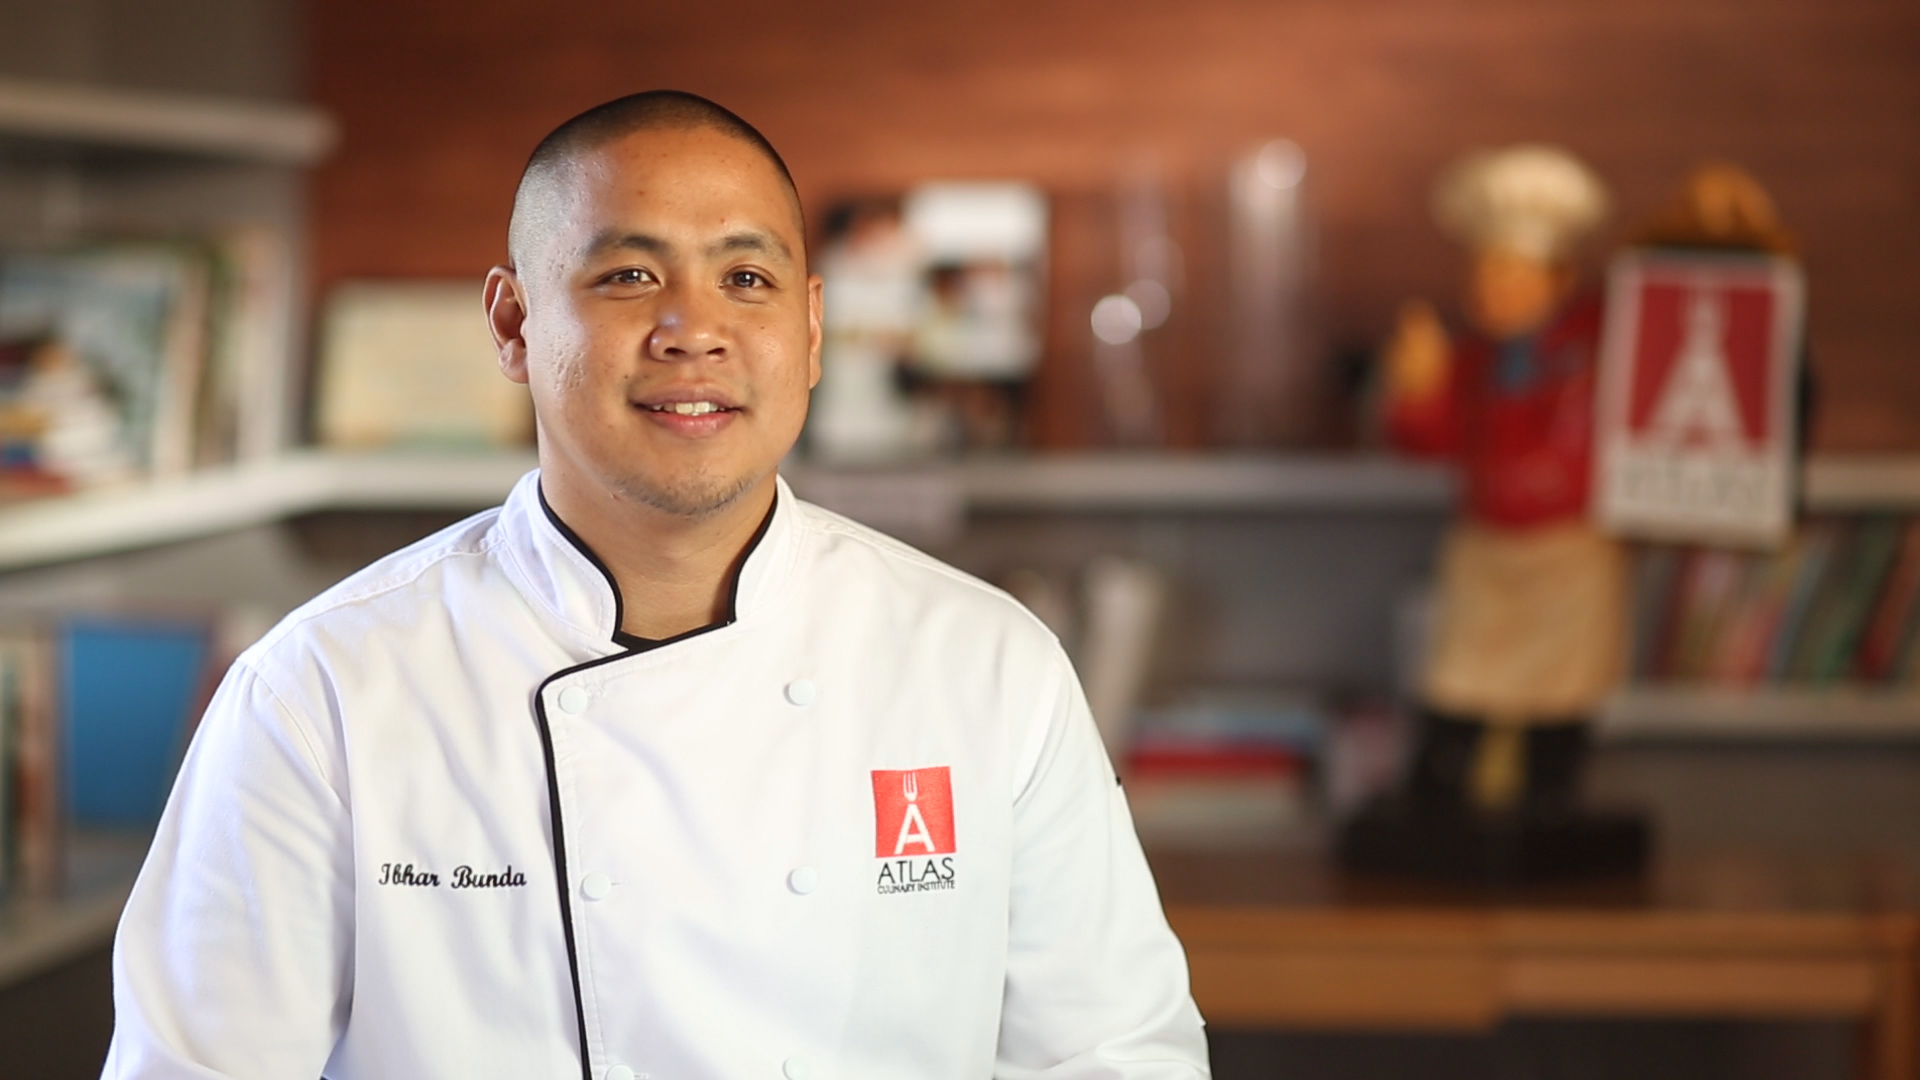 Chef Harry Bunda, Atlas Culinary Institute